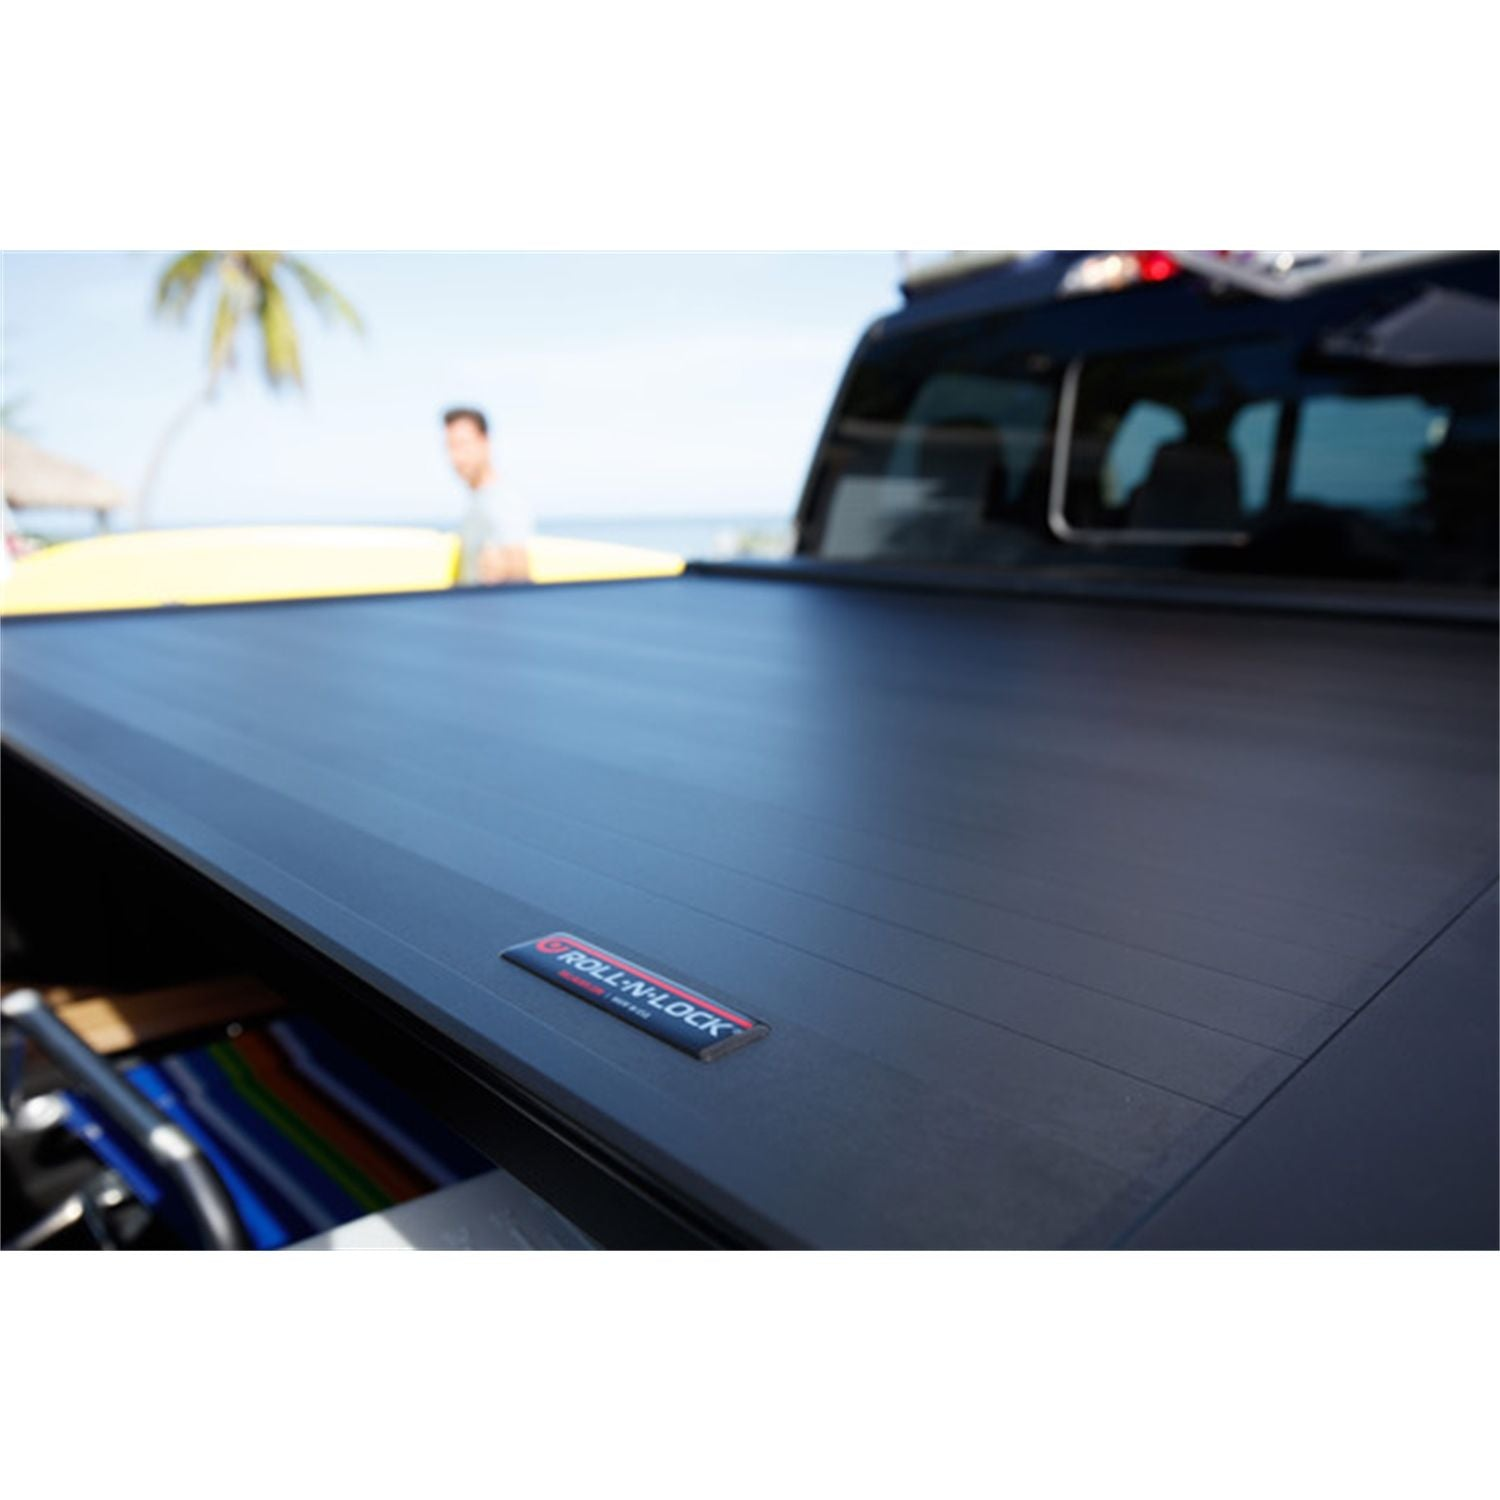 Roll-N-Lock RC447E Locking Retractable E-Series Truck Bed Tonneau Cover for 2019 Ram 1500 Classic & 2009-2018 Dodge Ram 1500 | Fits 5.7 Ft. Bed (Excludes Models w/RamBox)